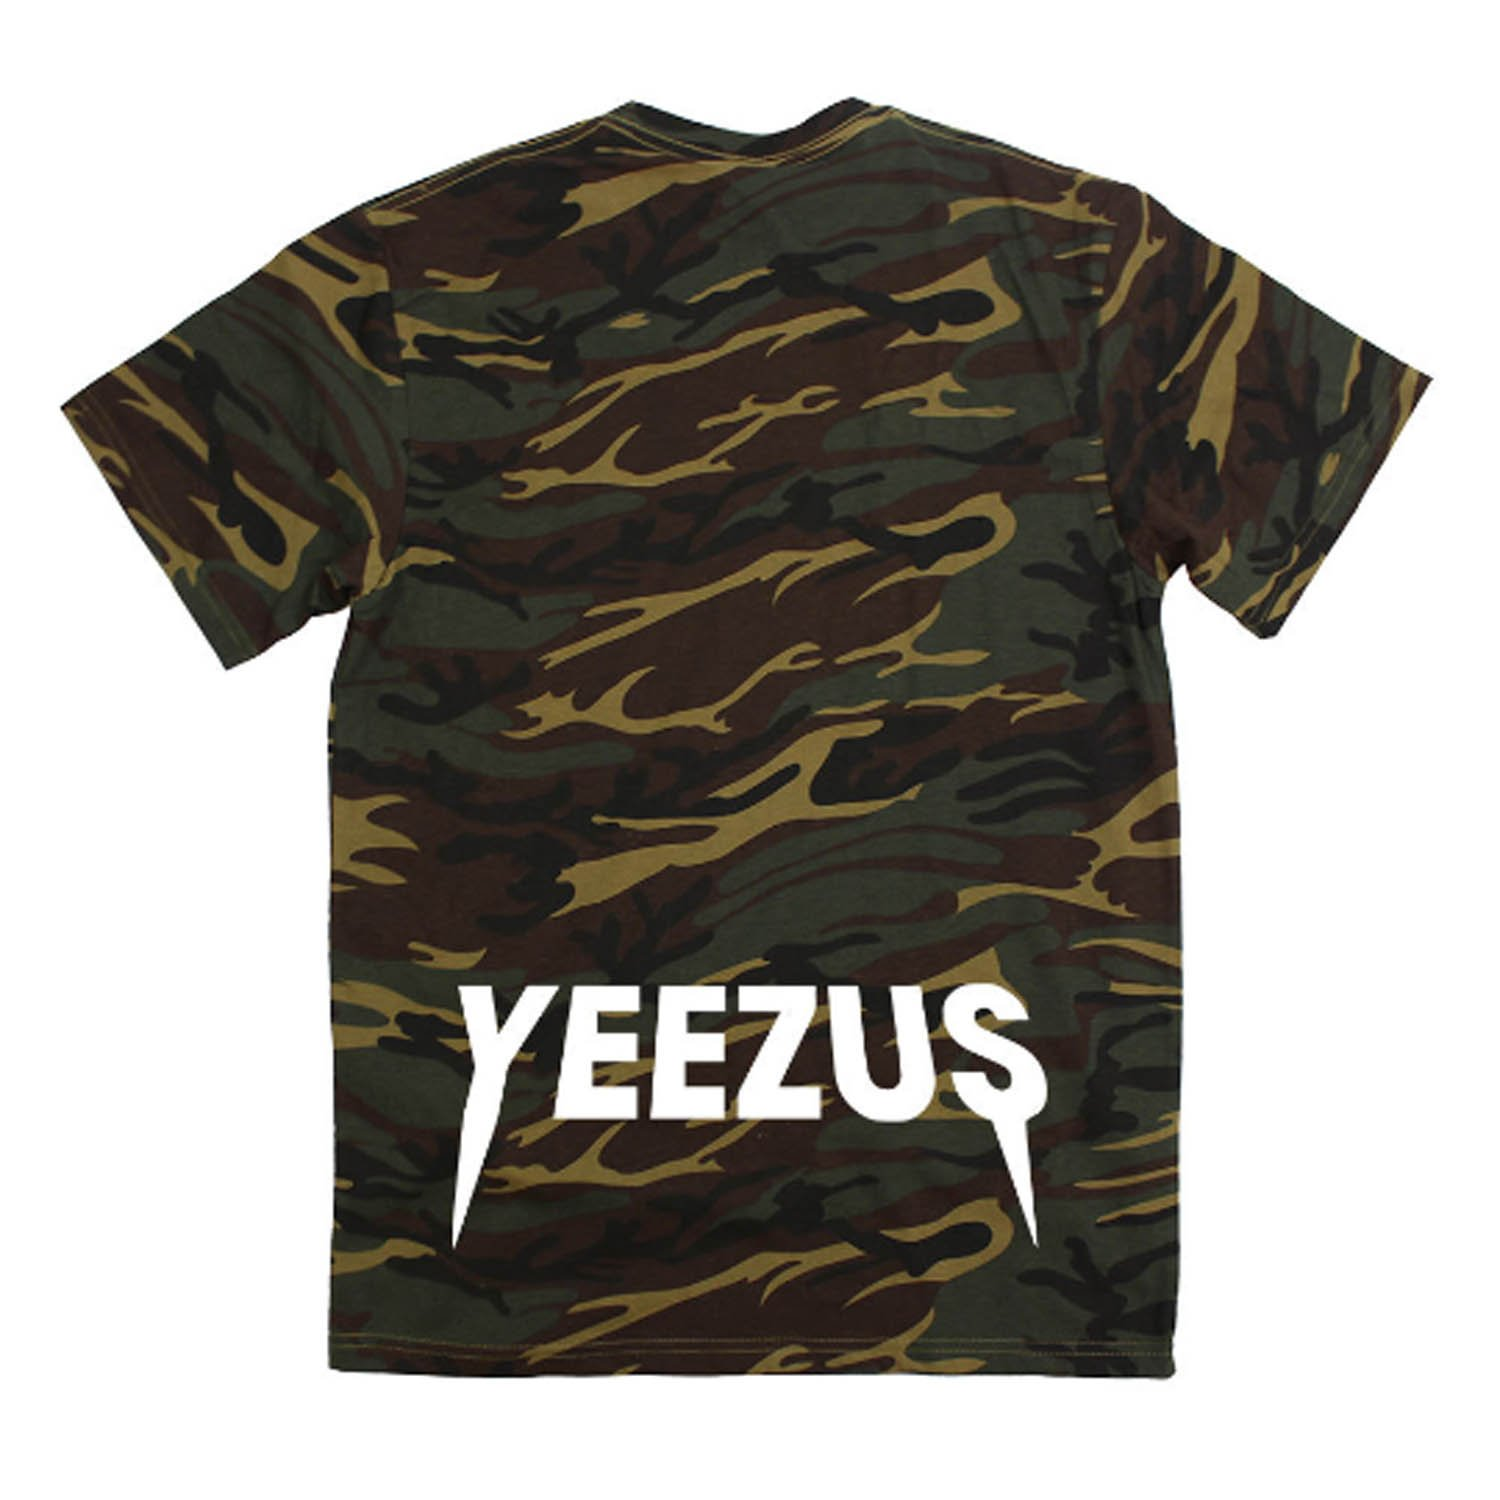 dfba5158a17ae Yeezus Tour Shirt Buy